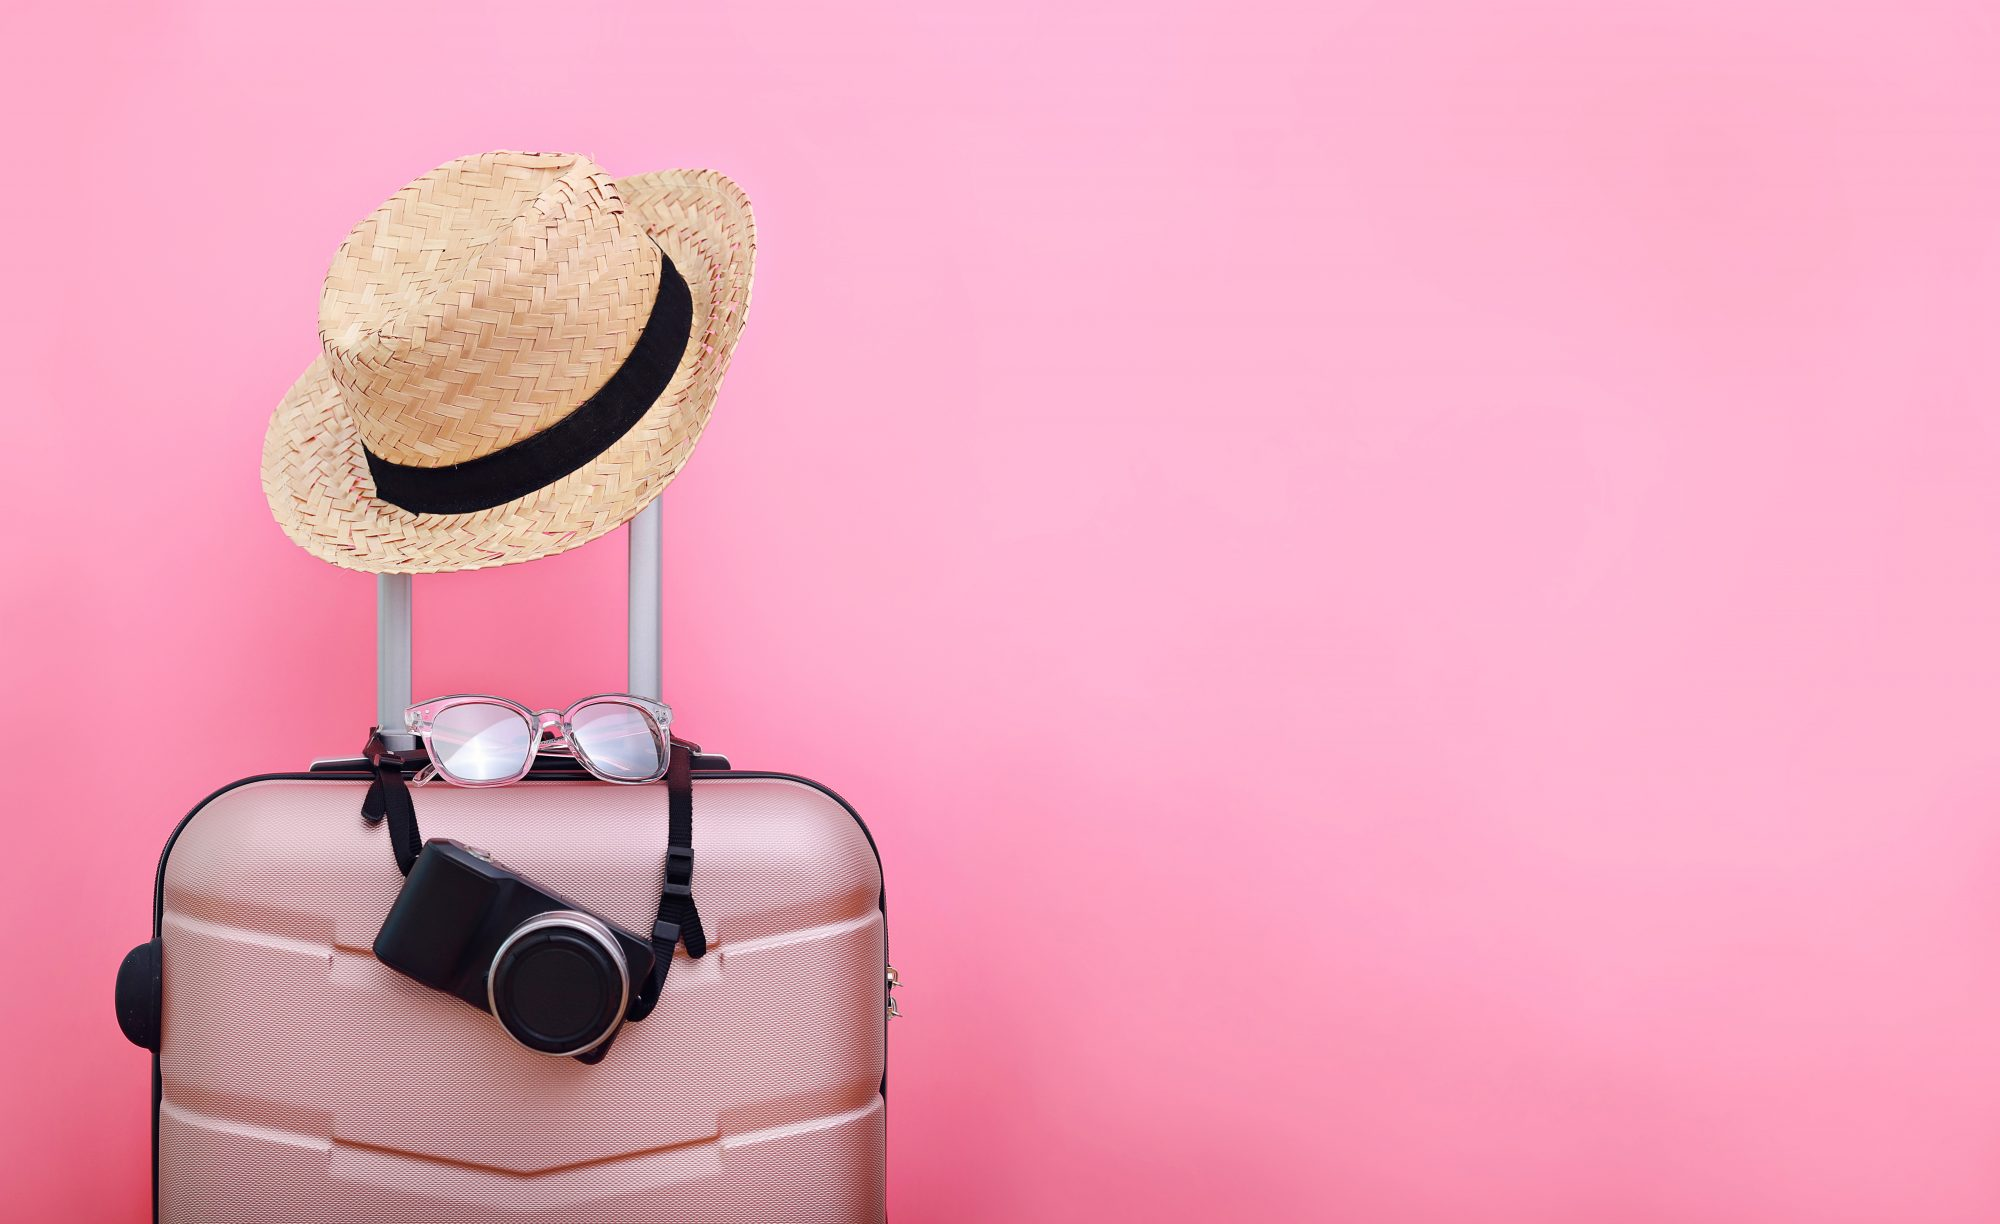 pink suitcase, hat, sunglasses, and camera on a pink background